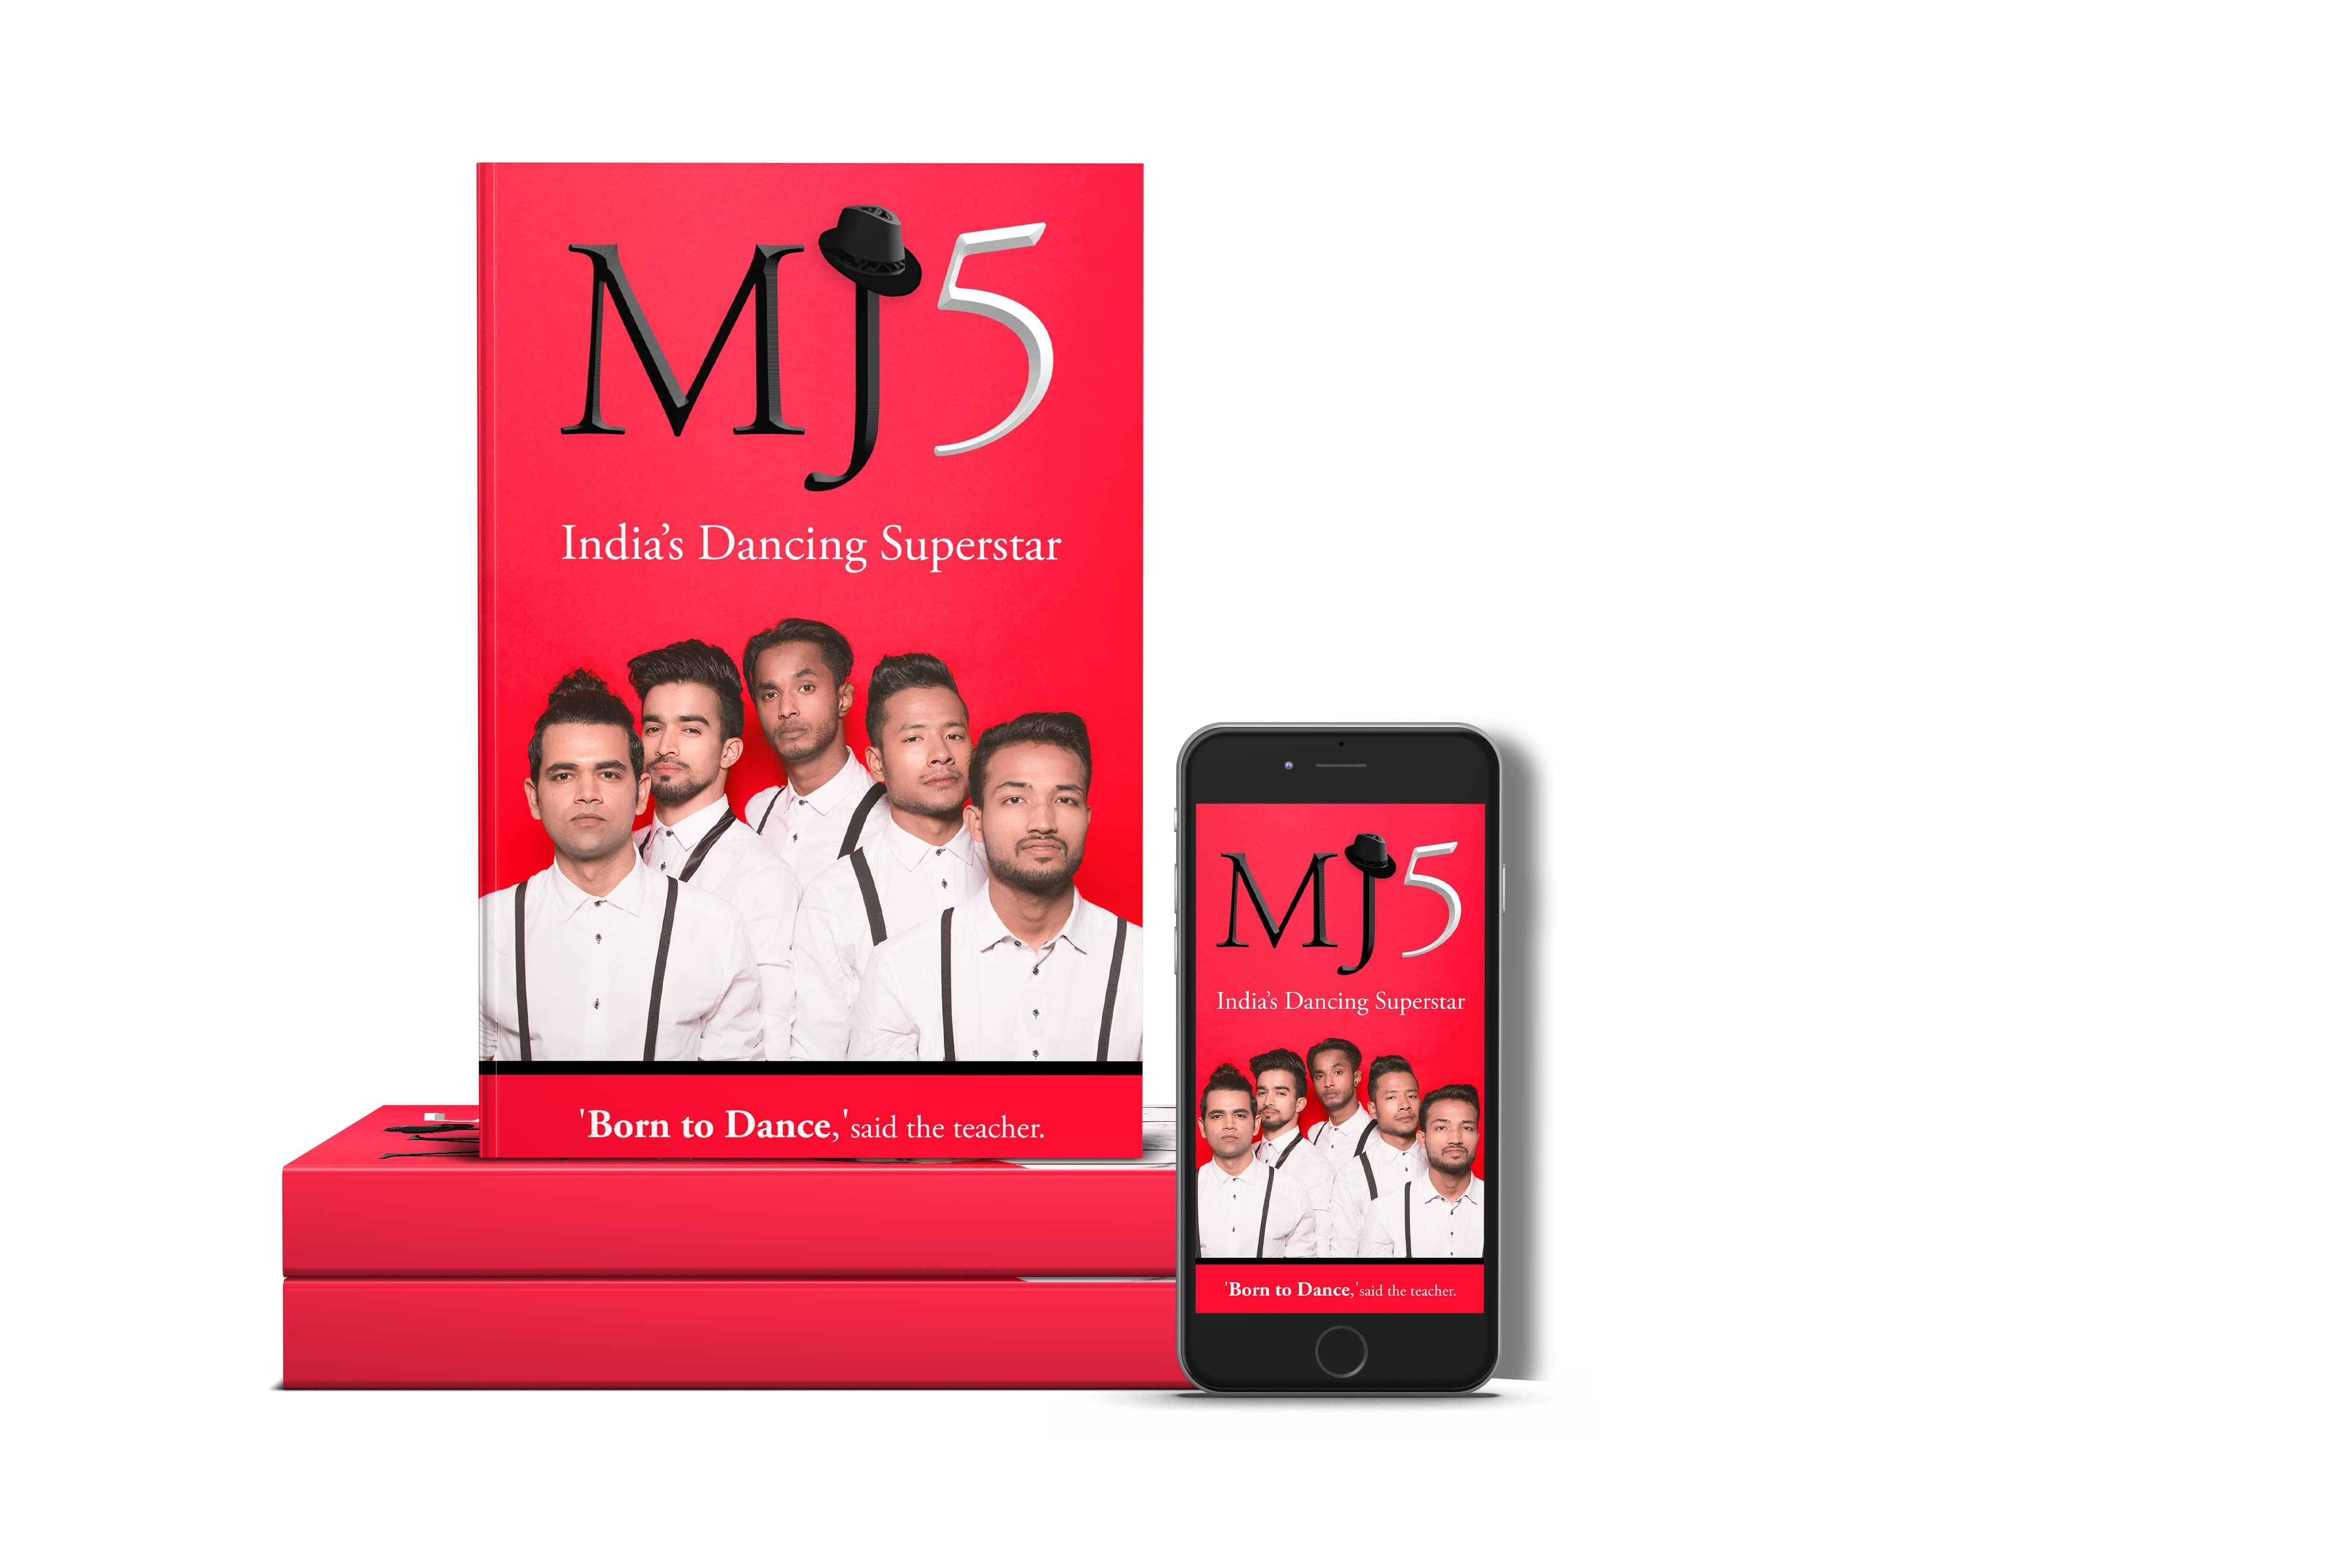 Dance journey  and success story of MJ5 in their own words - MJ5